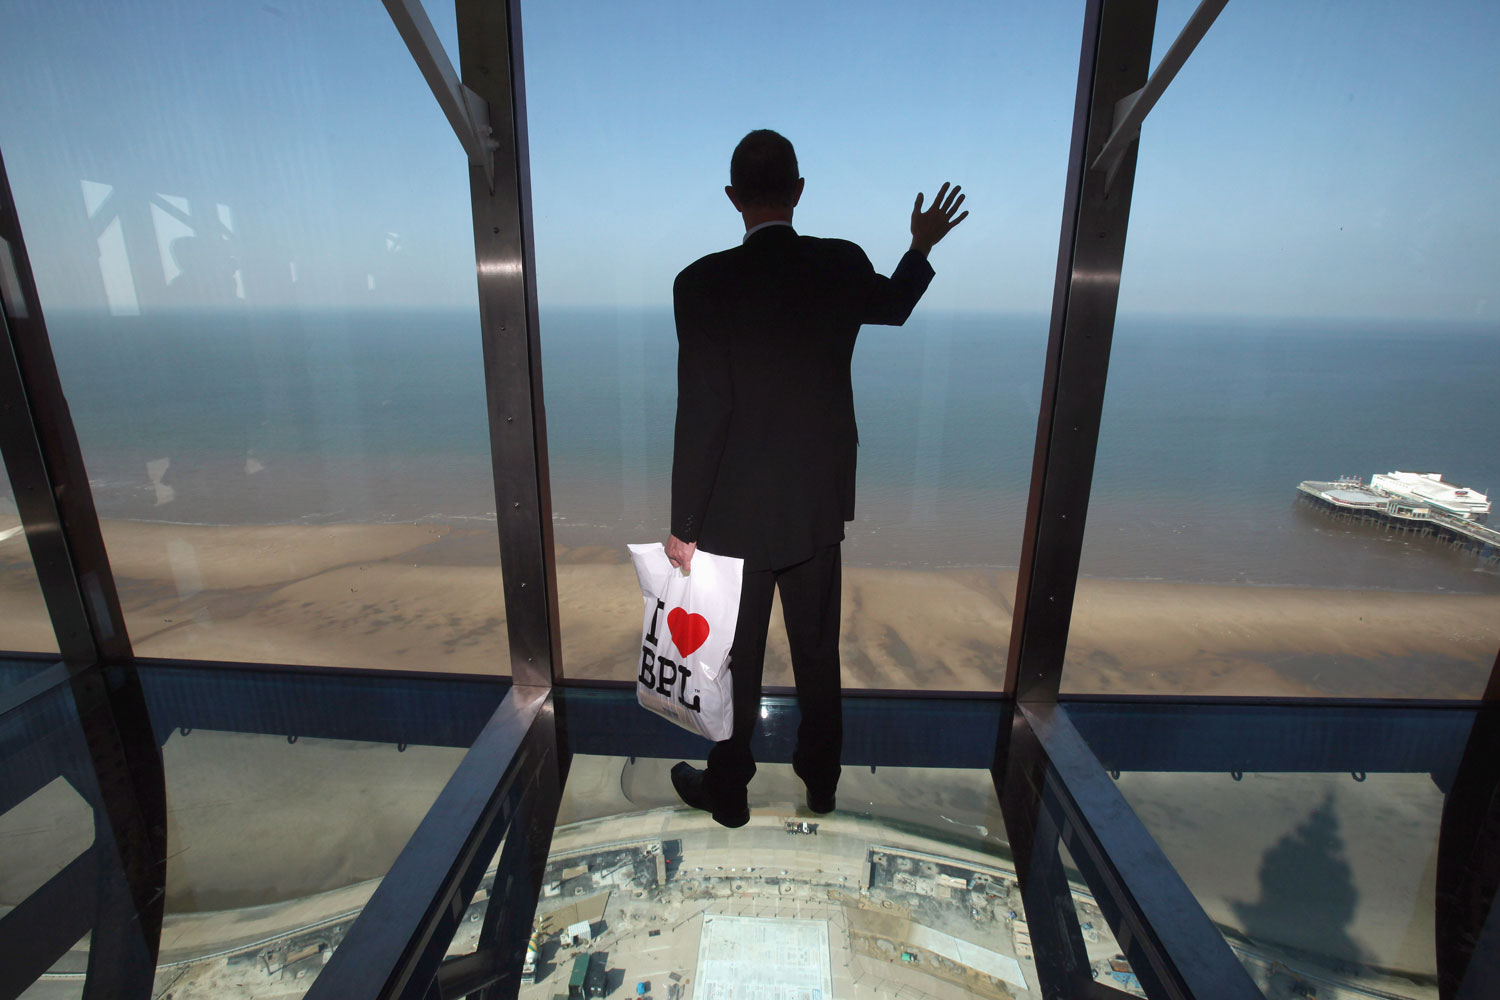 September 1, 2011. A visitor tries out the new glass Skywalk at the top of the refurbished Blackpool Tower in Blackpool, England. After a GBP £20 million refurbishment, the iconic seaside Blackpool Tower opened to the general public. The observation deck at the top of the tower becomes the Blackpool Tower Eye and features a skywalk made of glass overlooking the sea and the promenade.